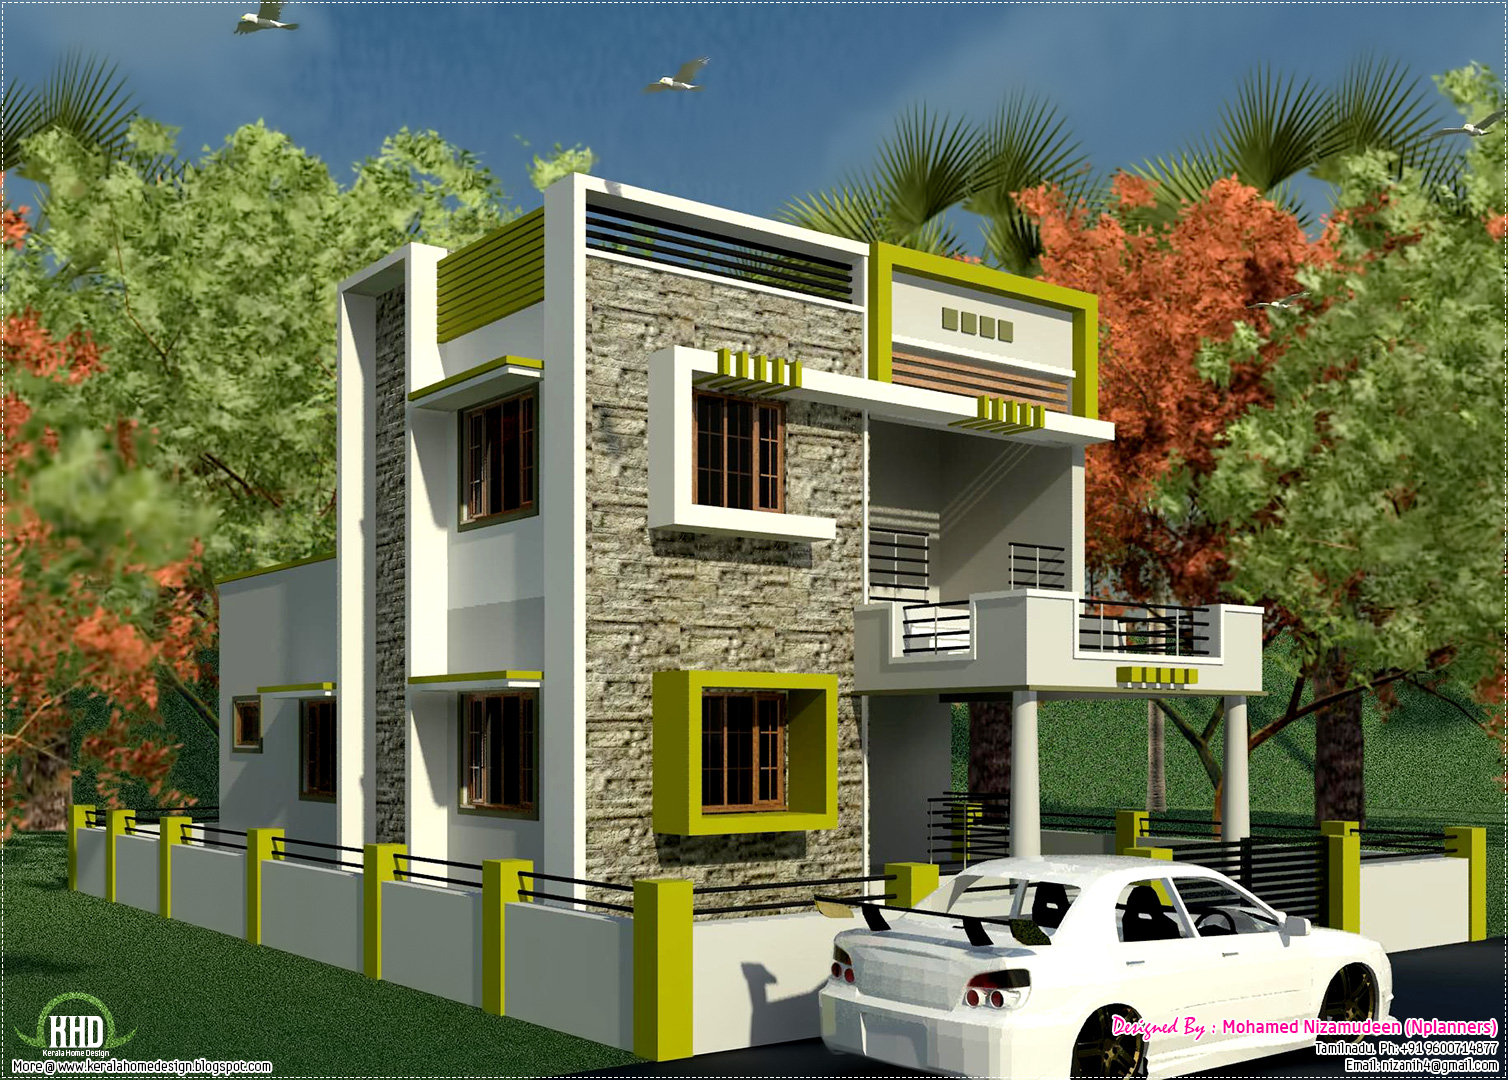 South indian style new modern 1460 sq feet house design for New small home designs in india